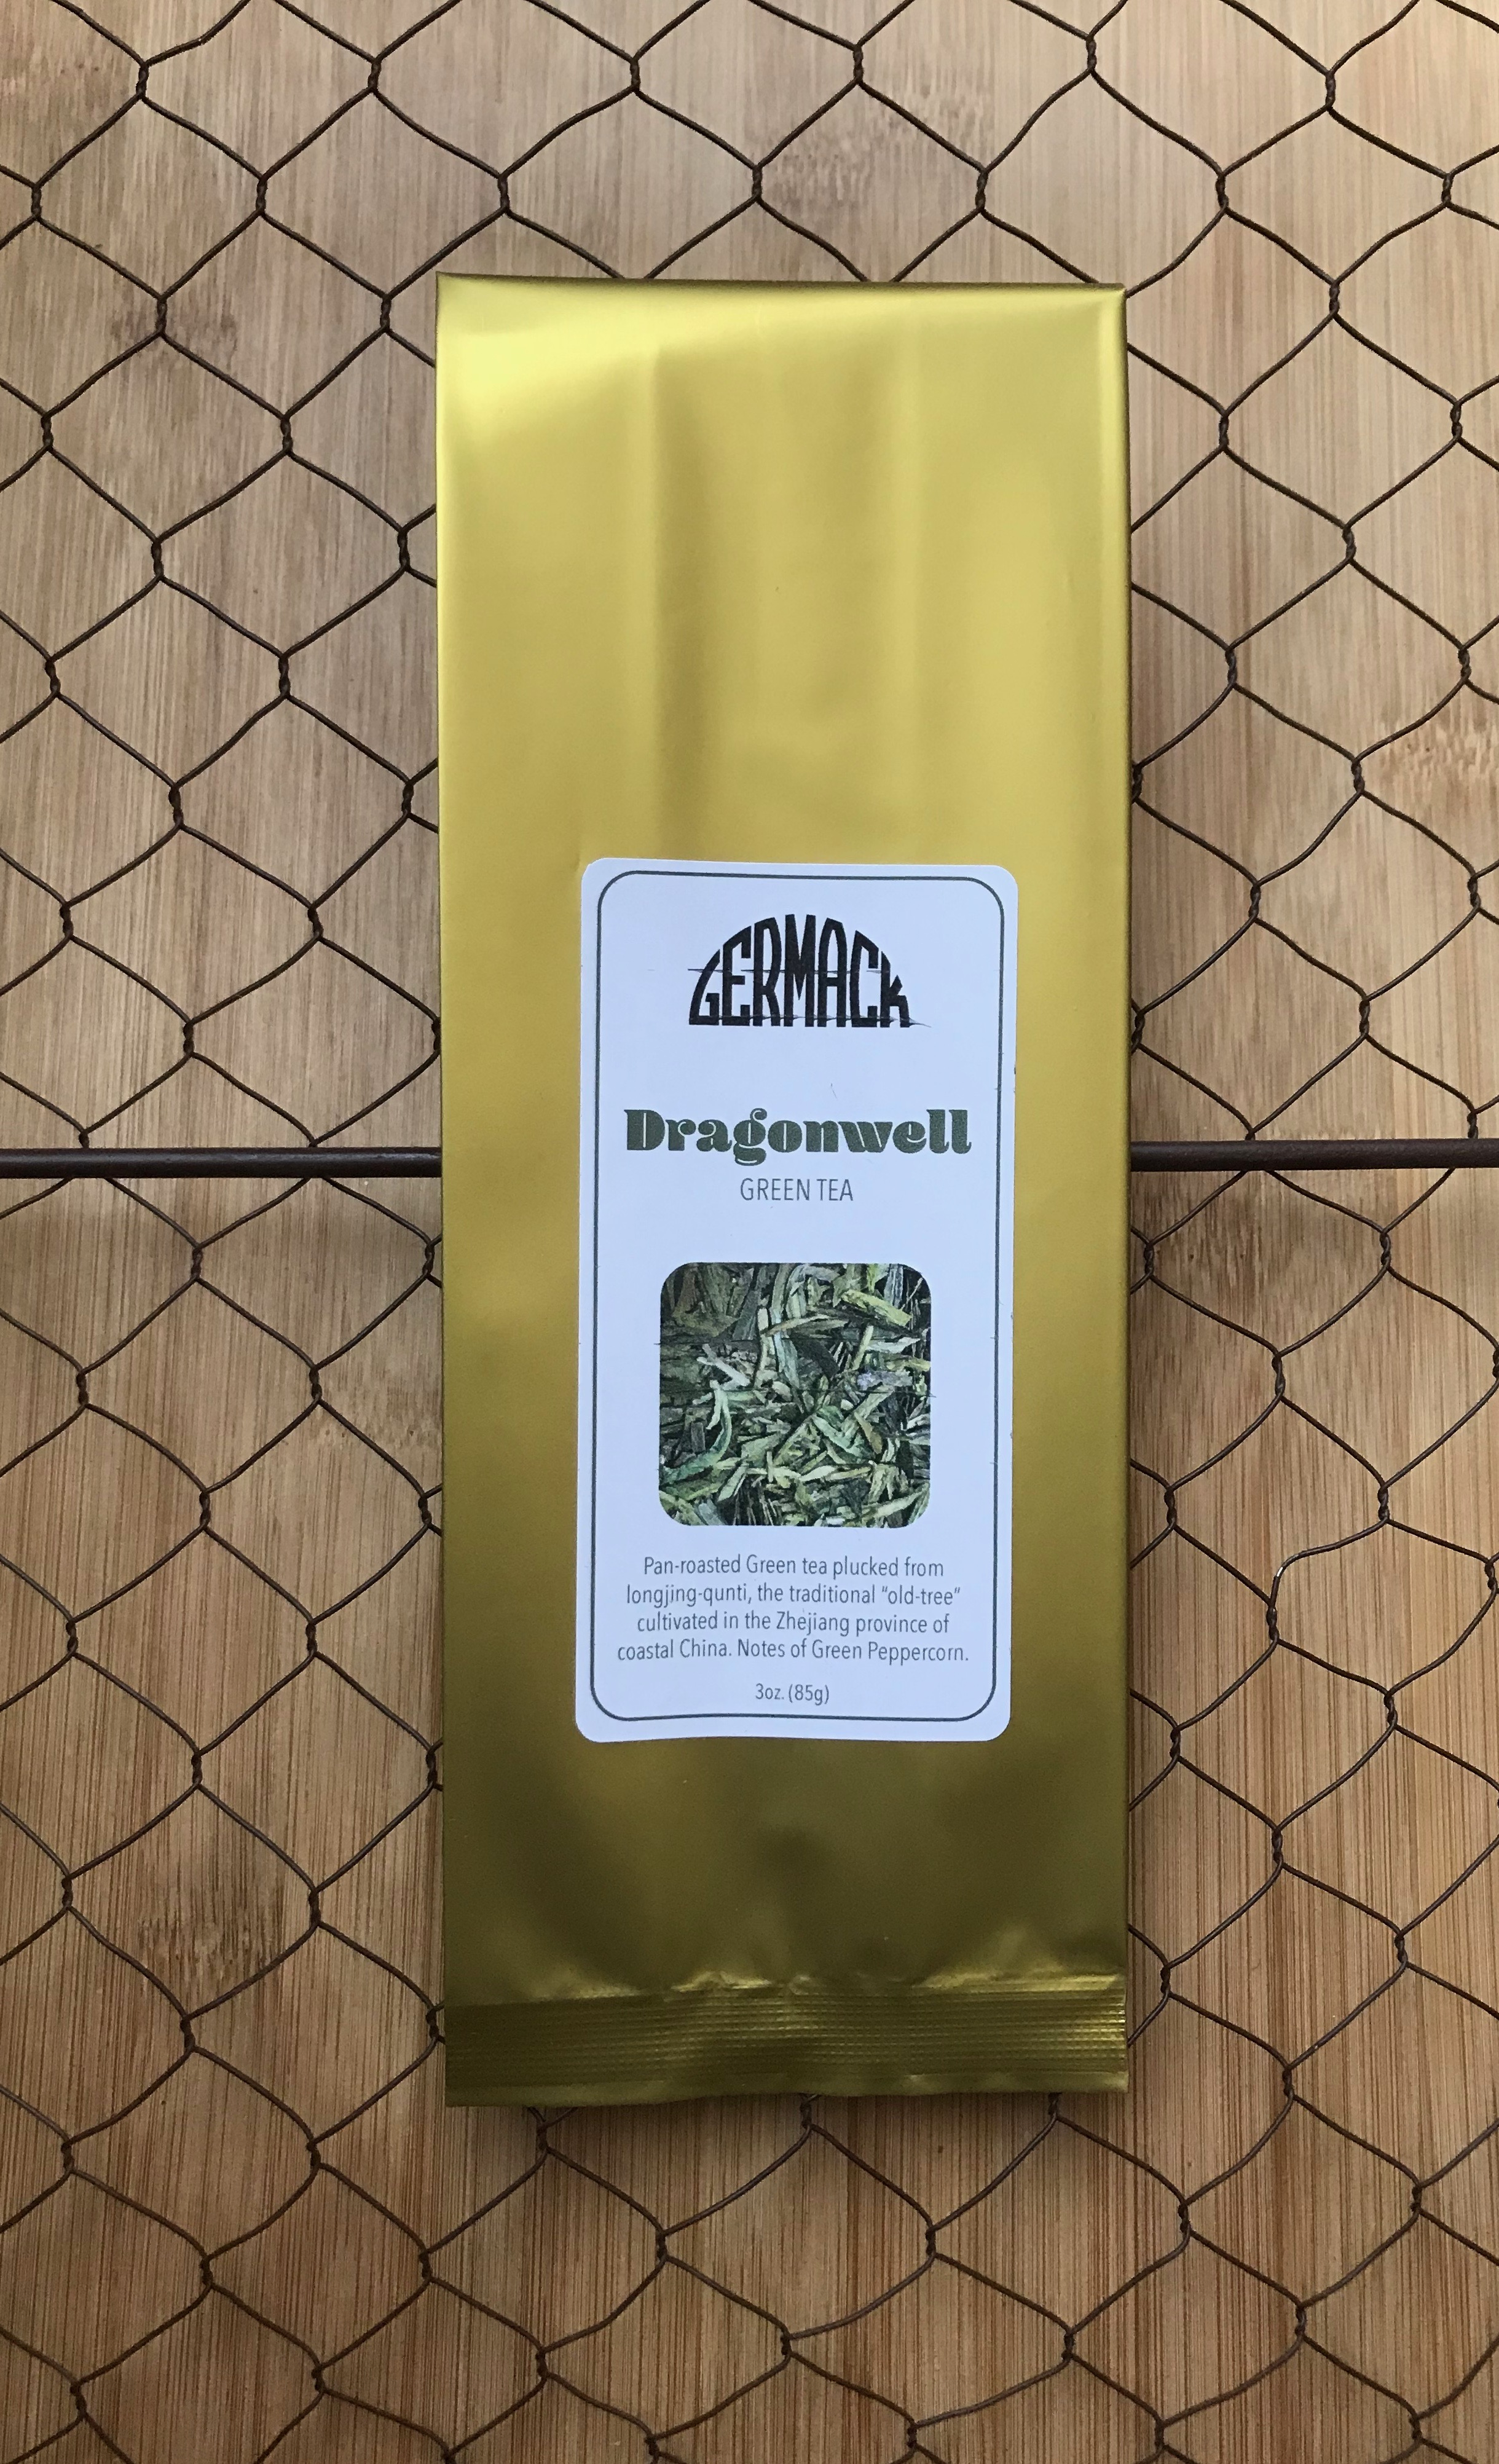 Picture Tea - Green Tea - Dragonwell - 3oz